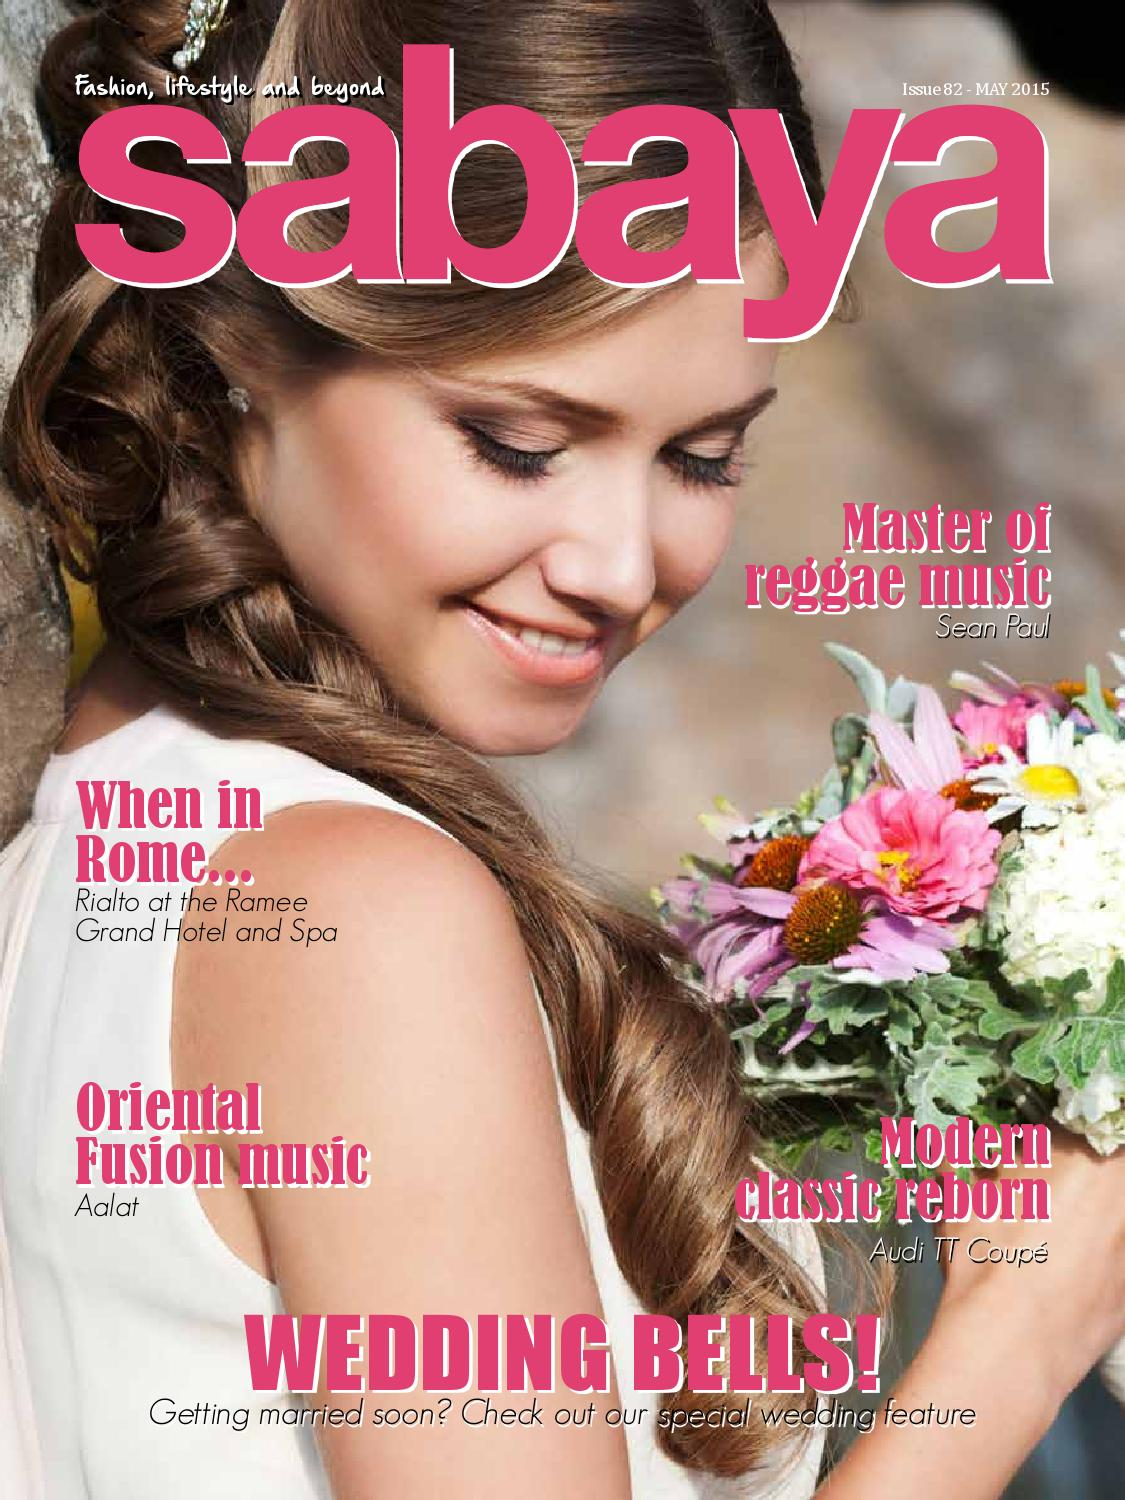 Sabaya Magazine - May 2015 free download